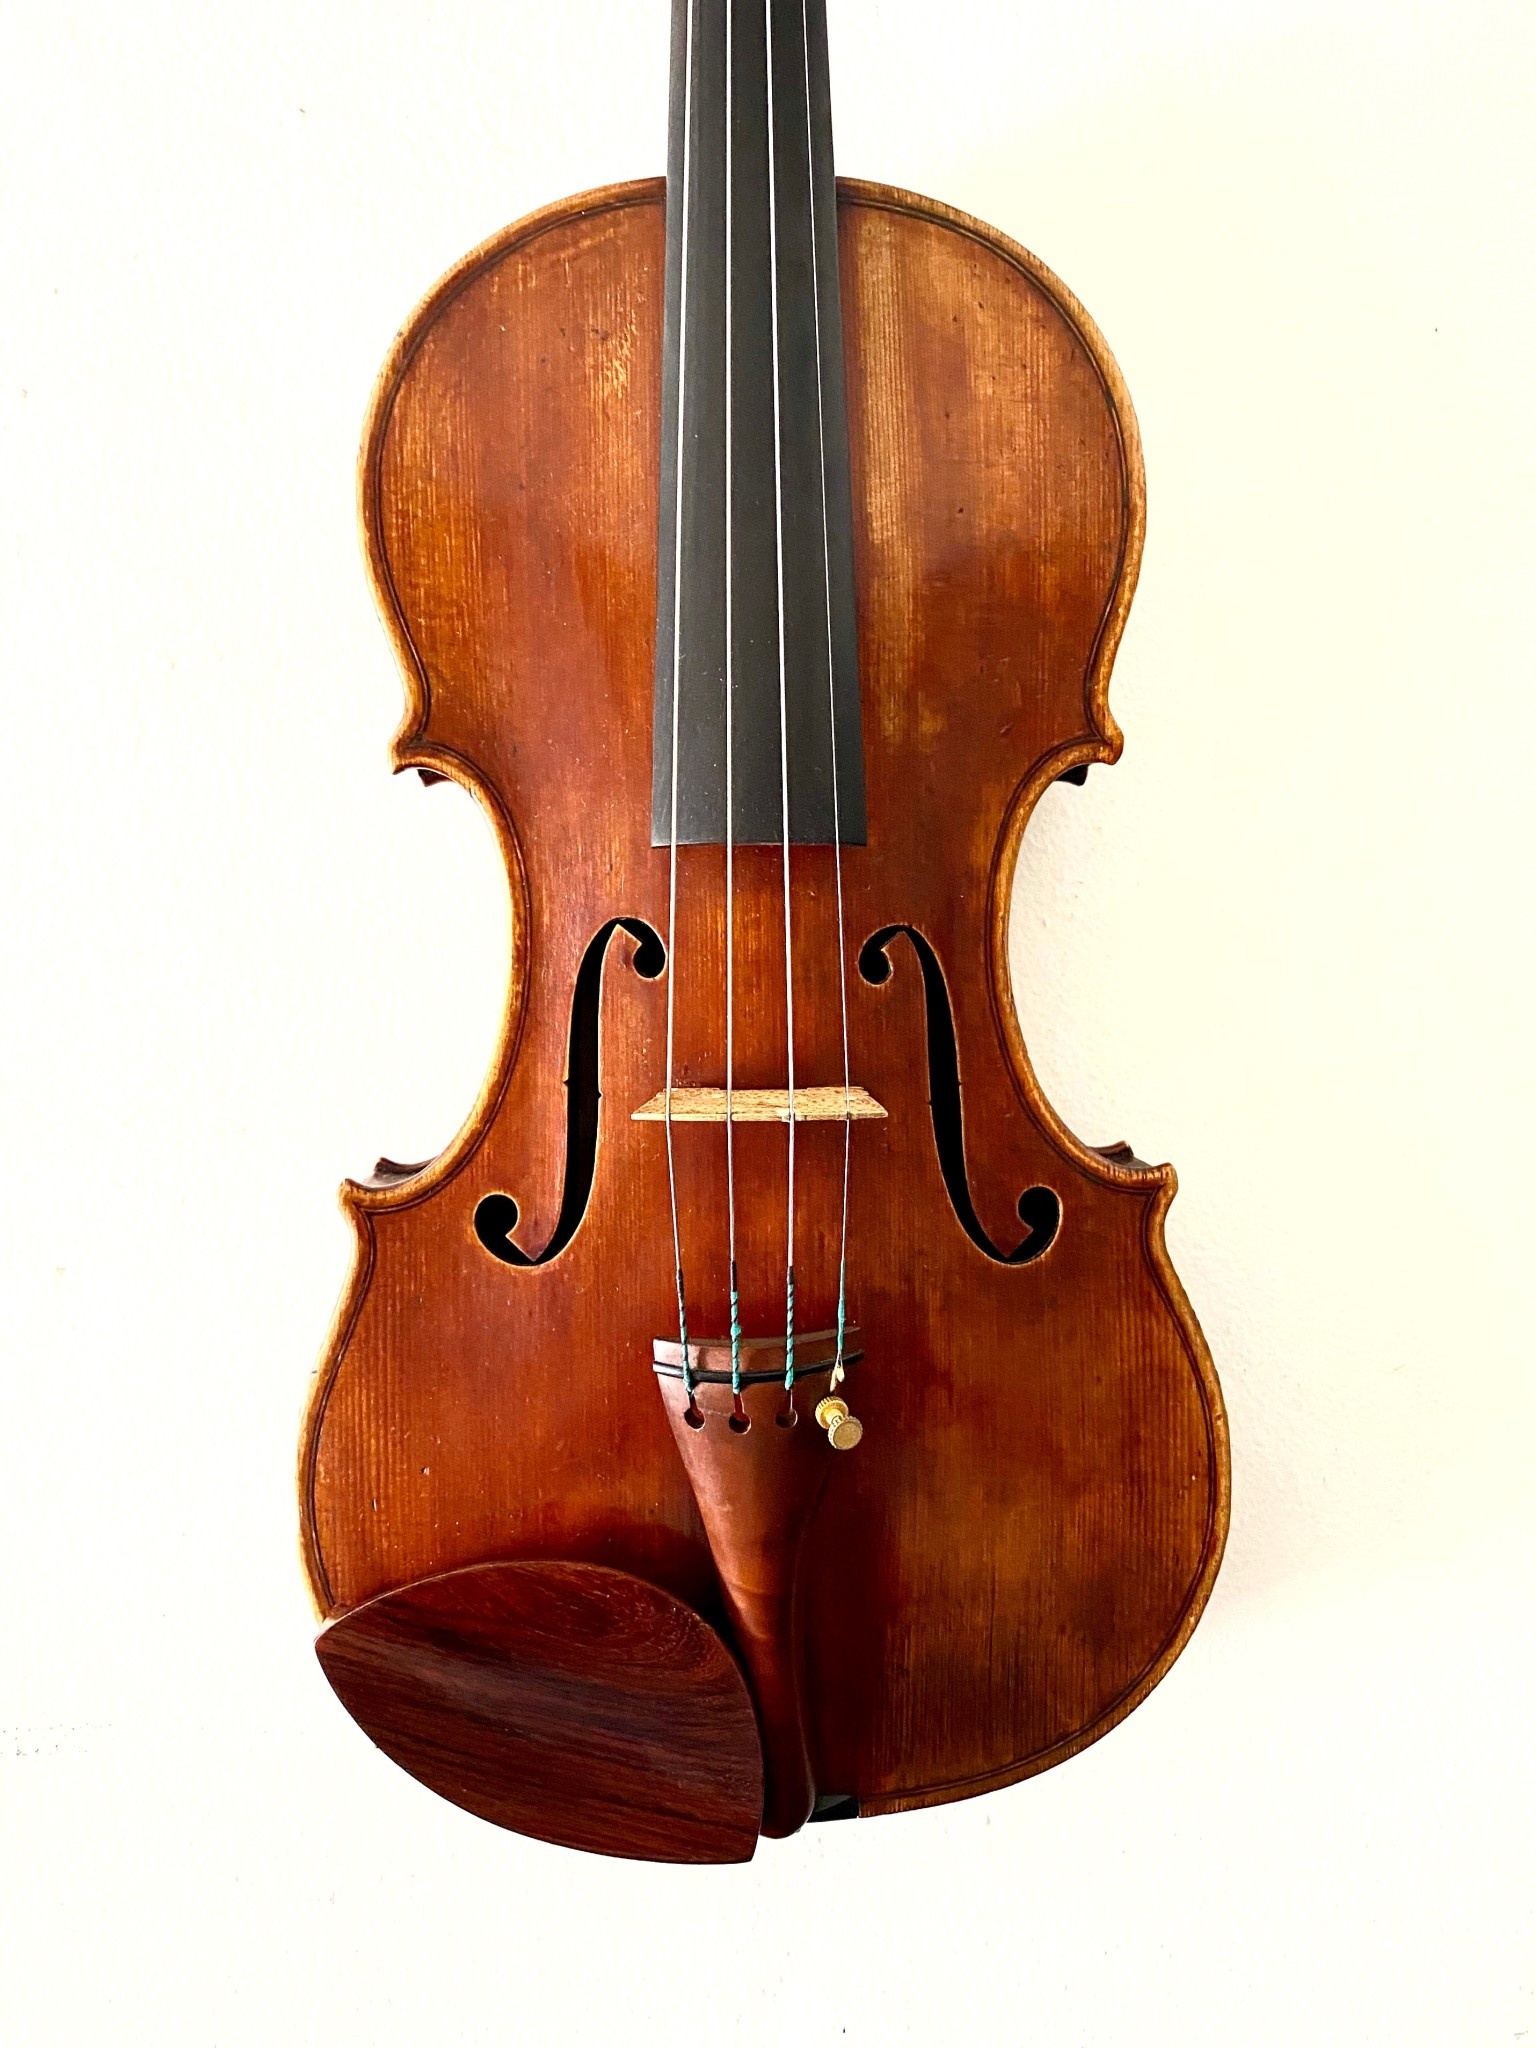 Georg Eittinger violin, 2003, Plowden Guarneri del Gesu model